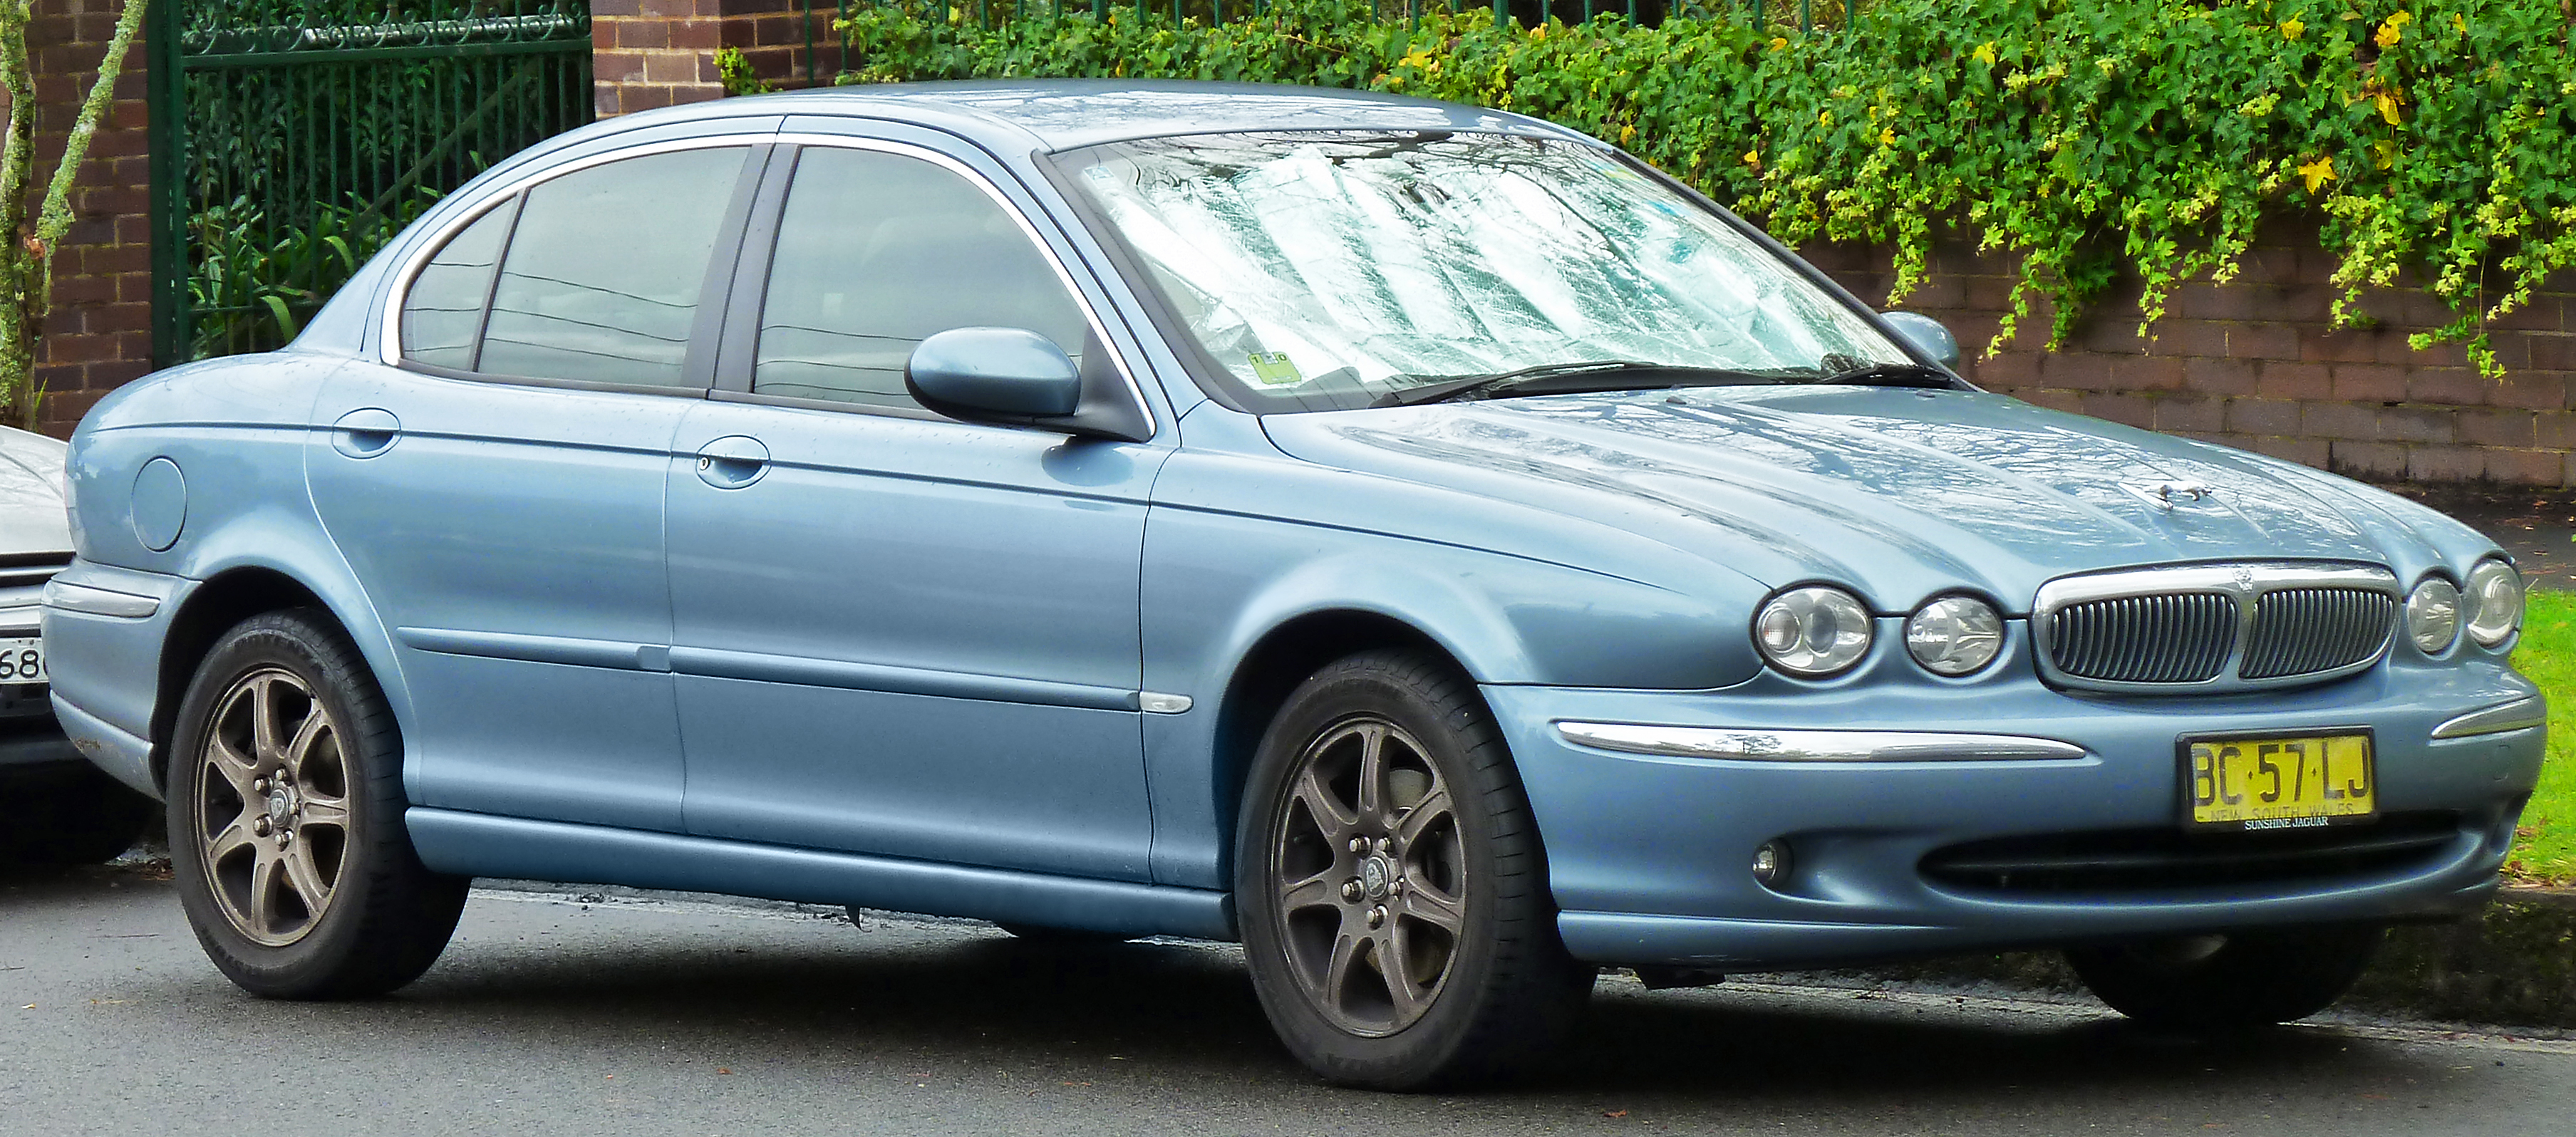 2004 Jaguar X-type #2